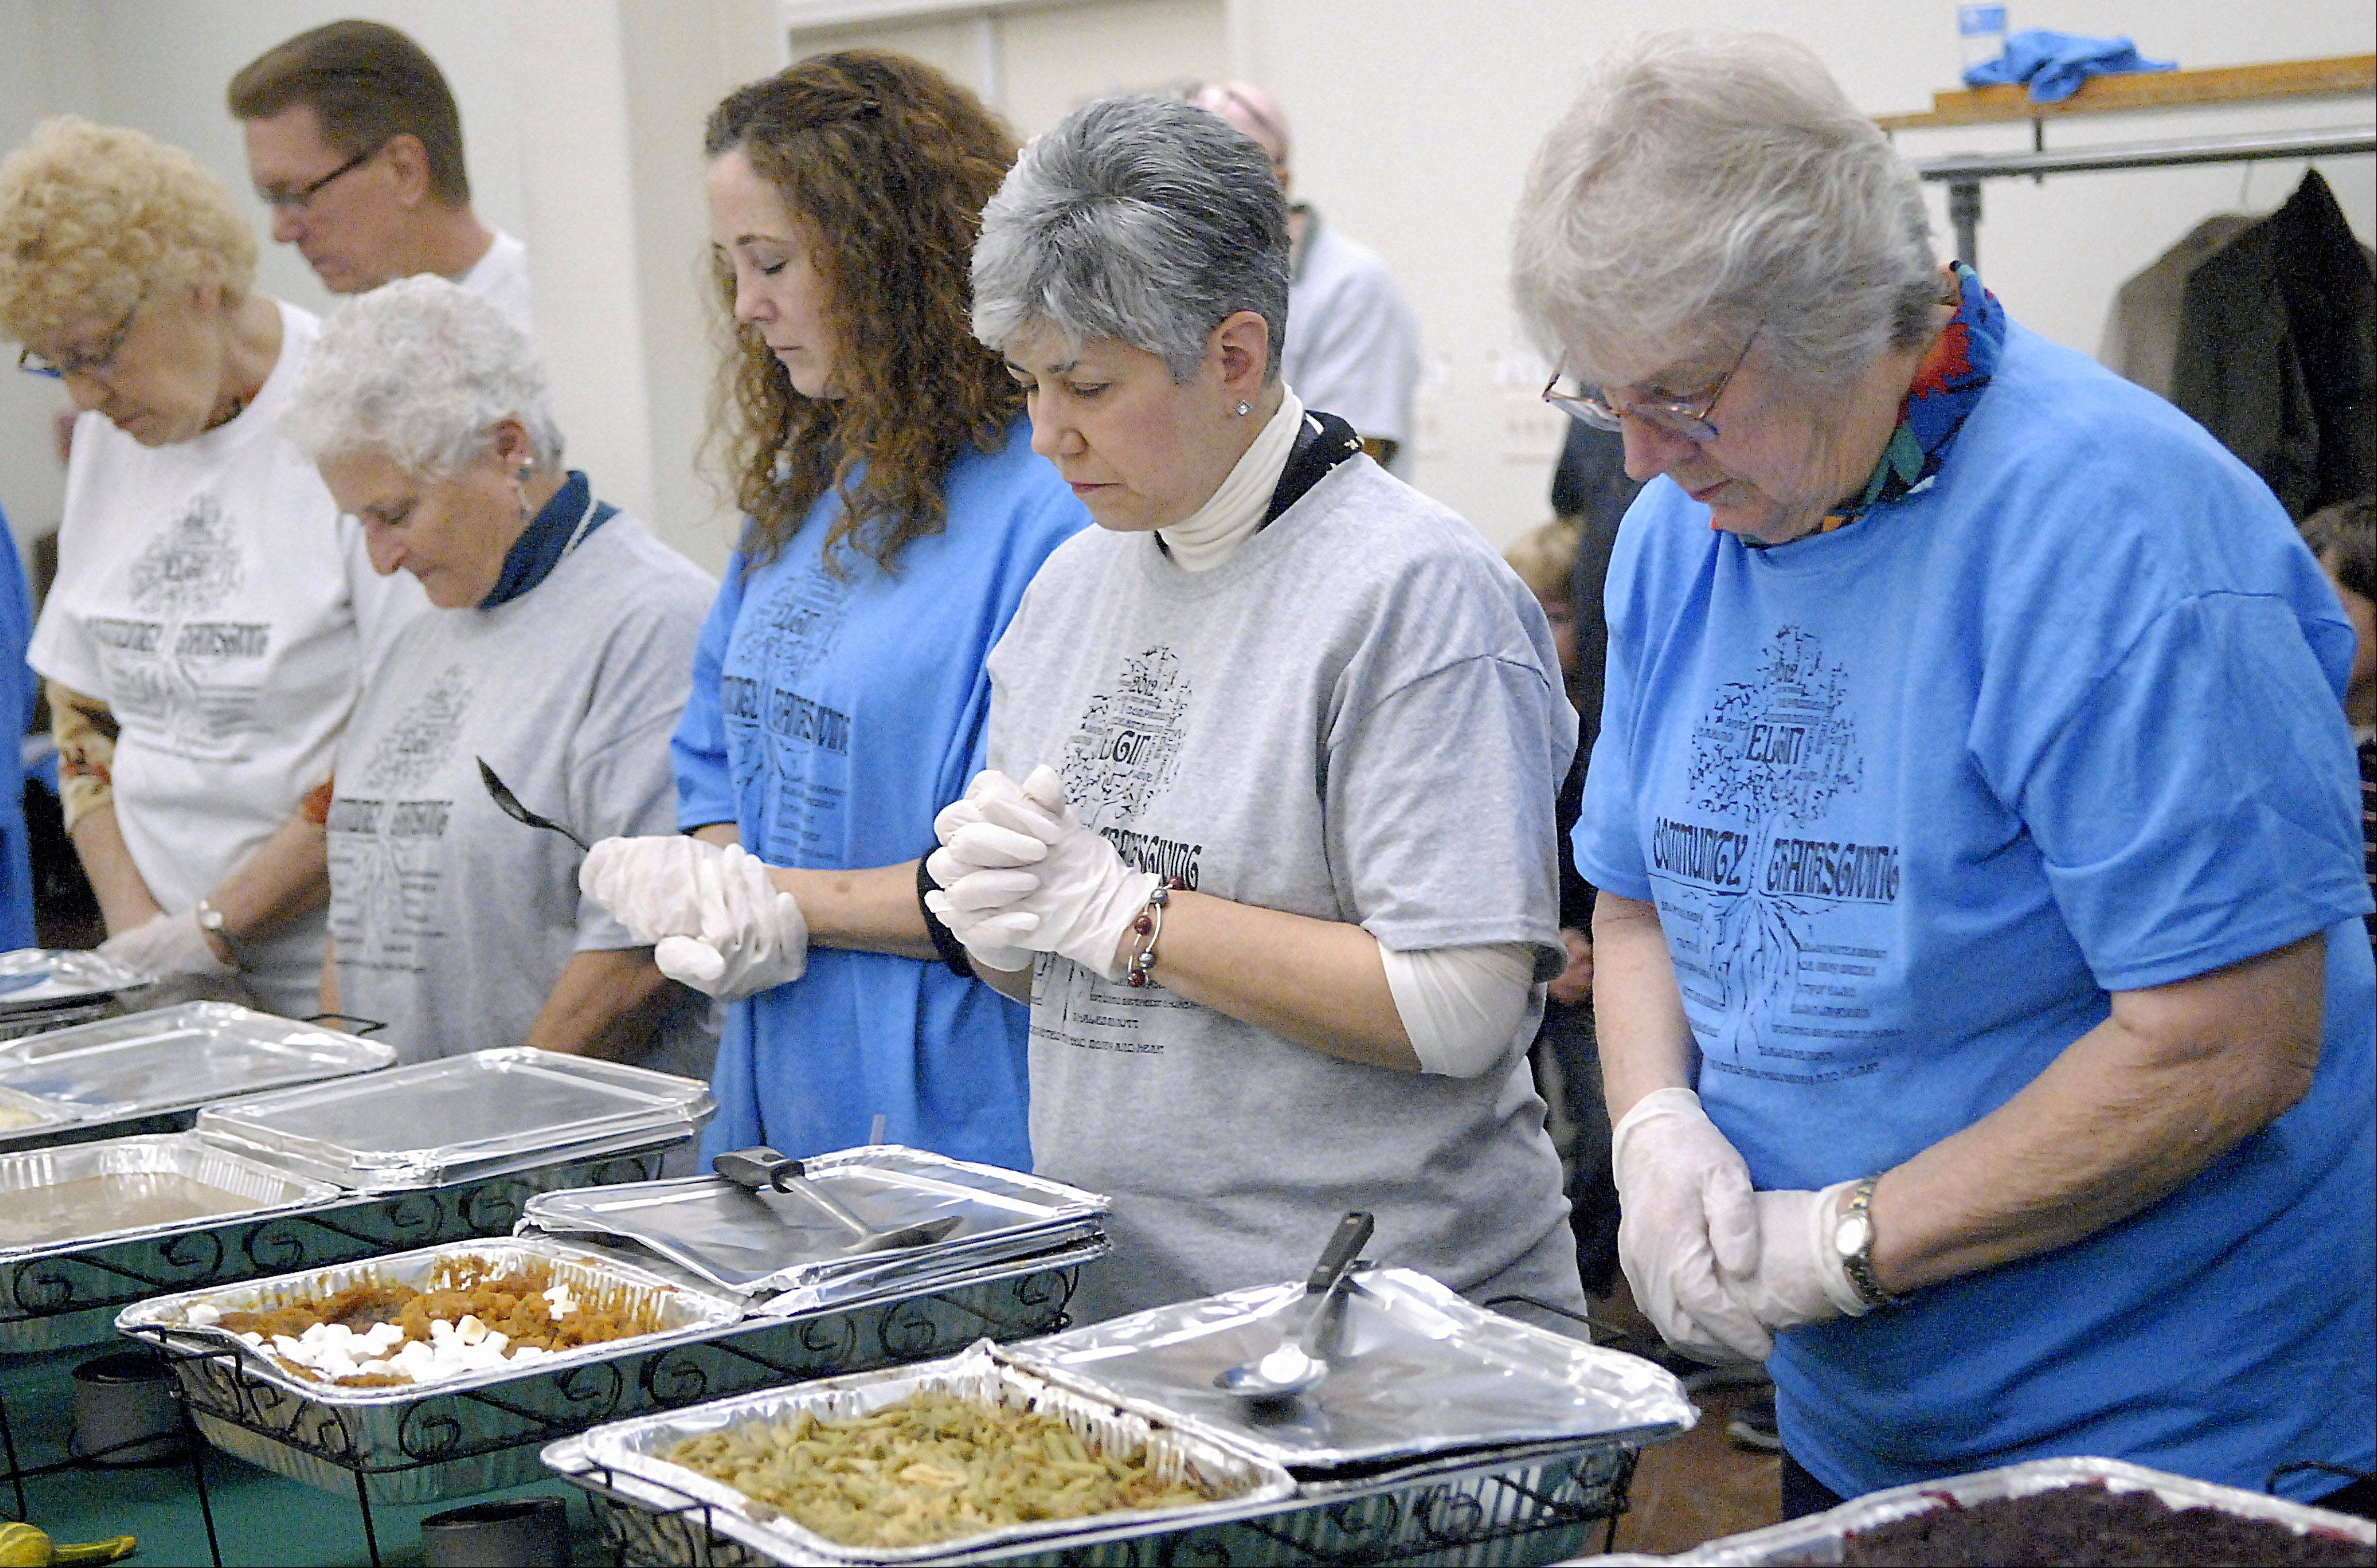 Beth Anderson of Streamwood, third from left, Carol Johnson and Marlene Hensrud, both of Elgin, bow their heads in prayer with fellow volunteers before serving at the fourth annual community dinner at First United Methodist Church in Elgin on Thursday. Johnson and Hensrud are residents of the Edgewood active adult community in Elgin, and they brought several volunteers to help out again this year.